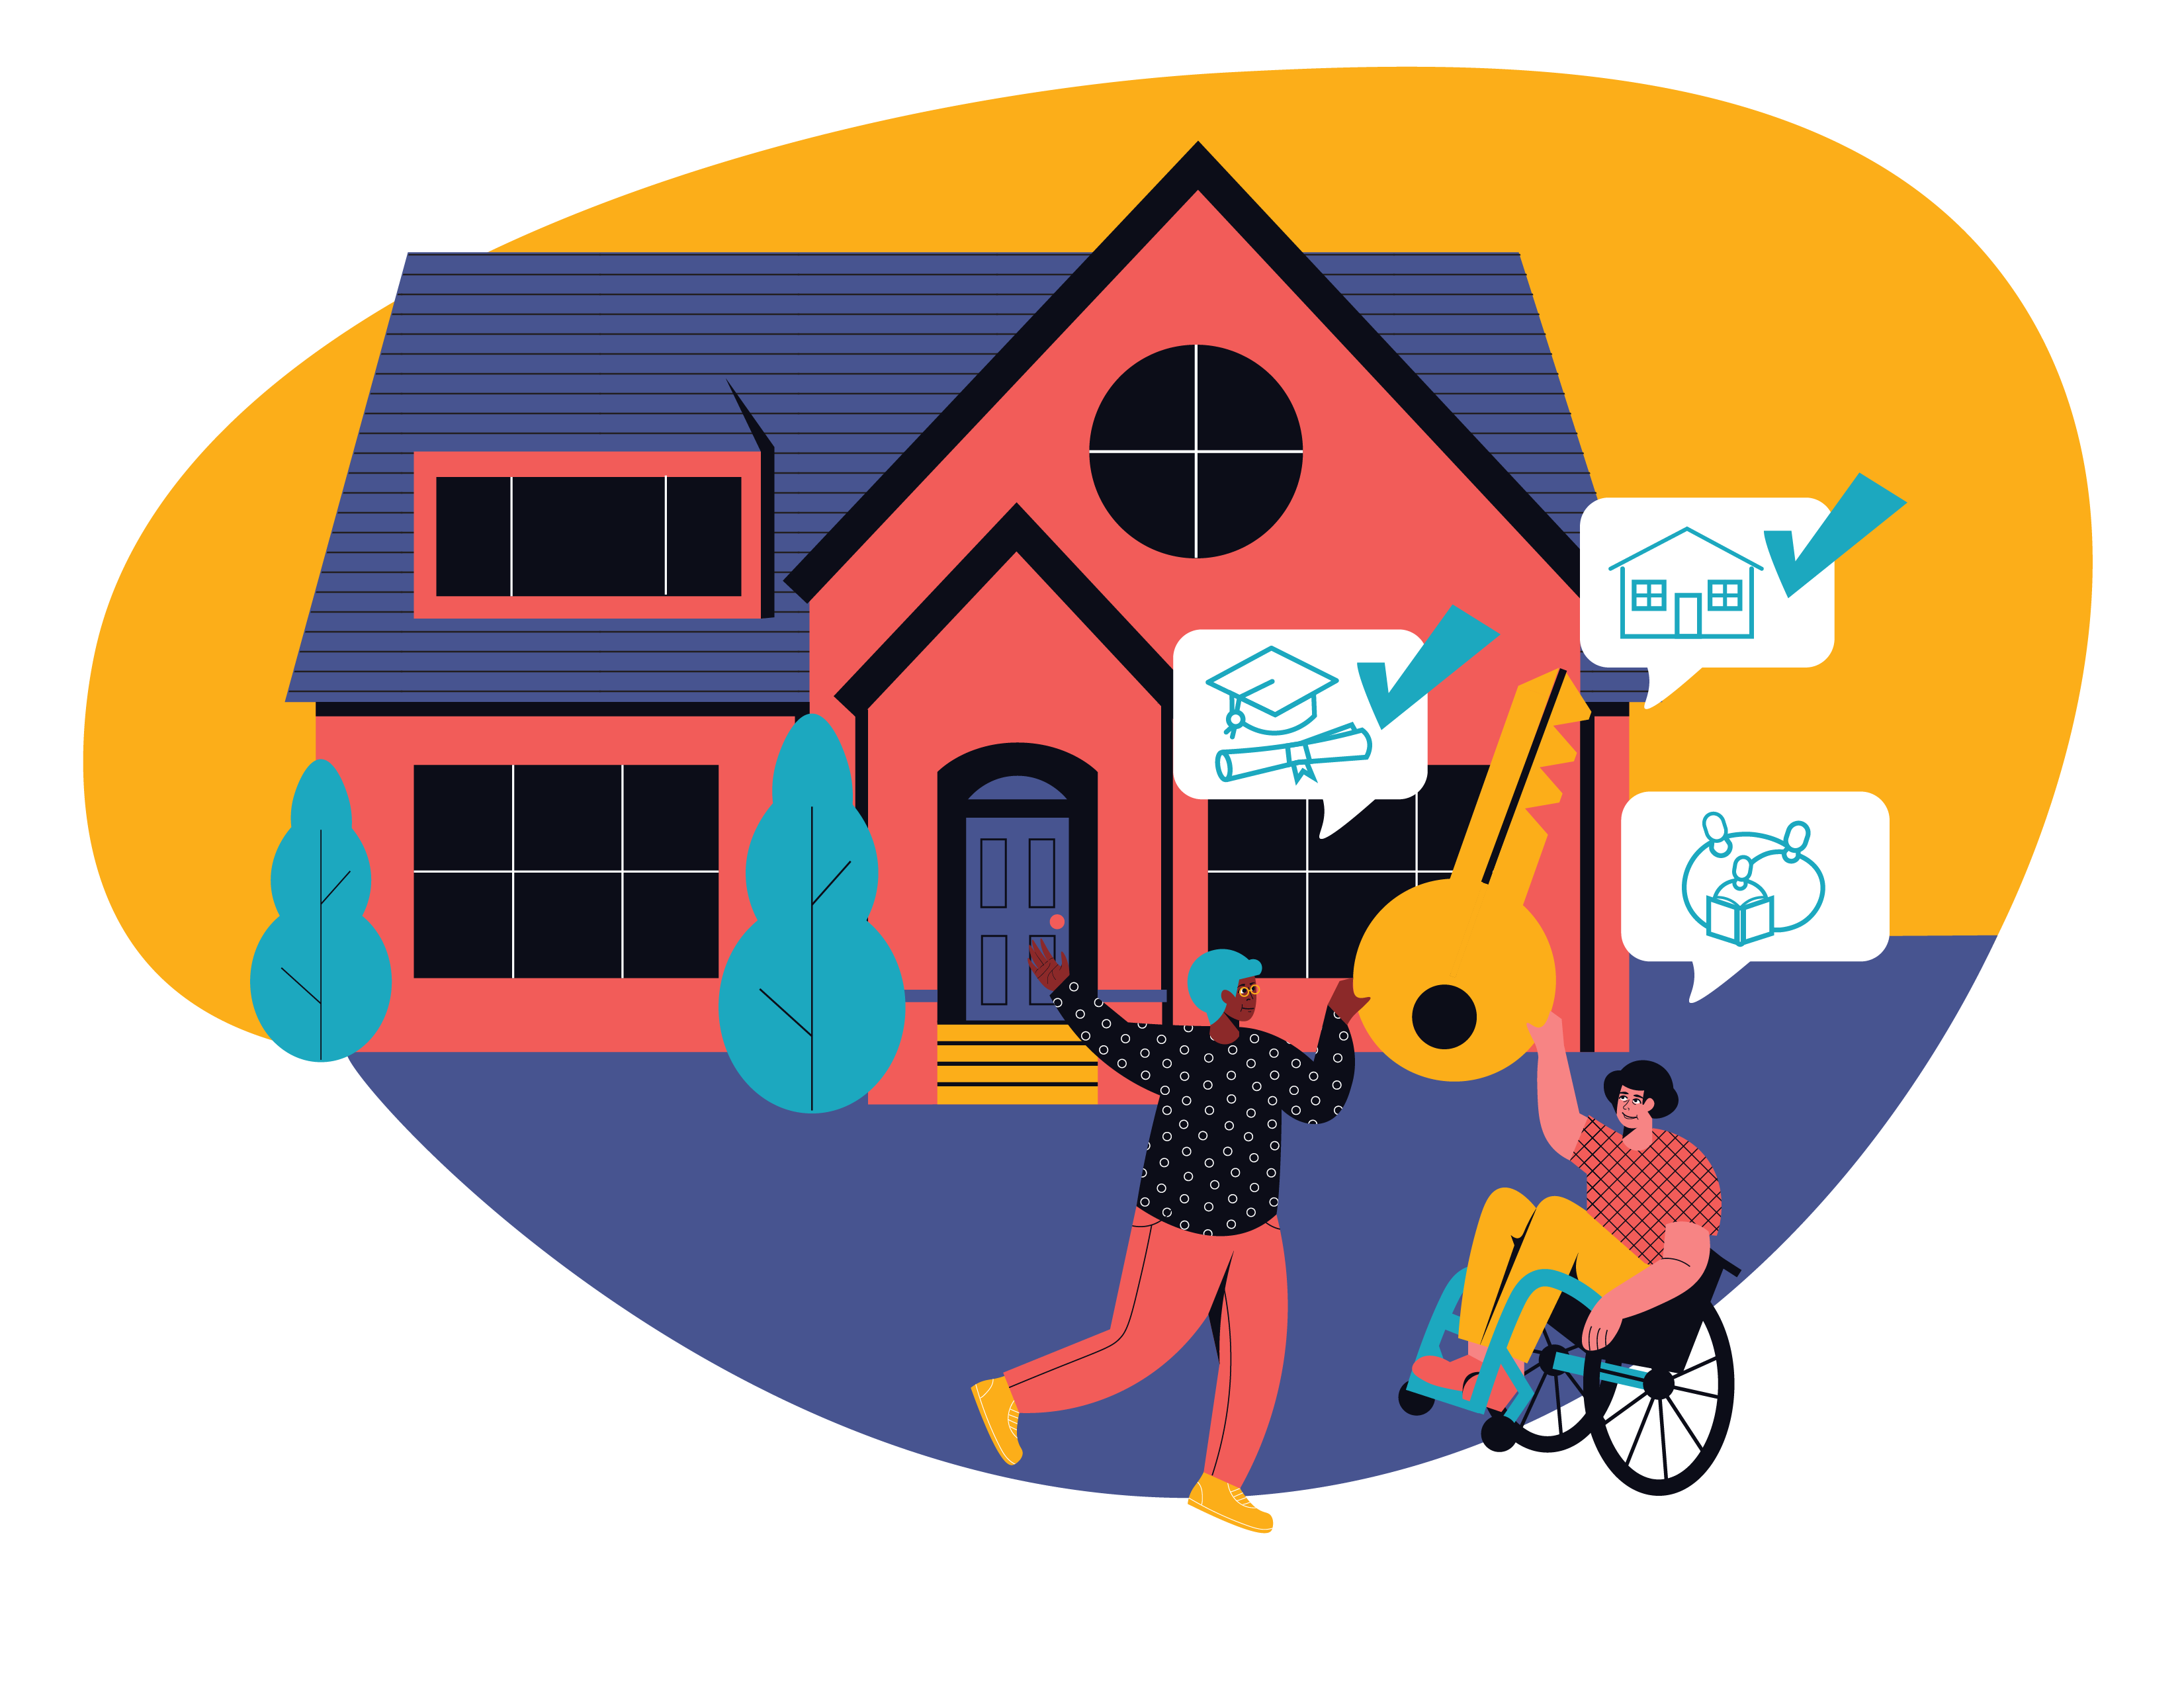 Expand affordable homeownership opportunities and improv housing stability illustration